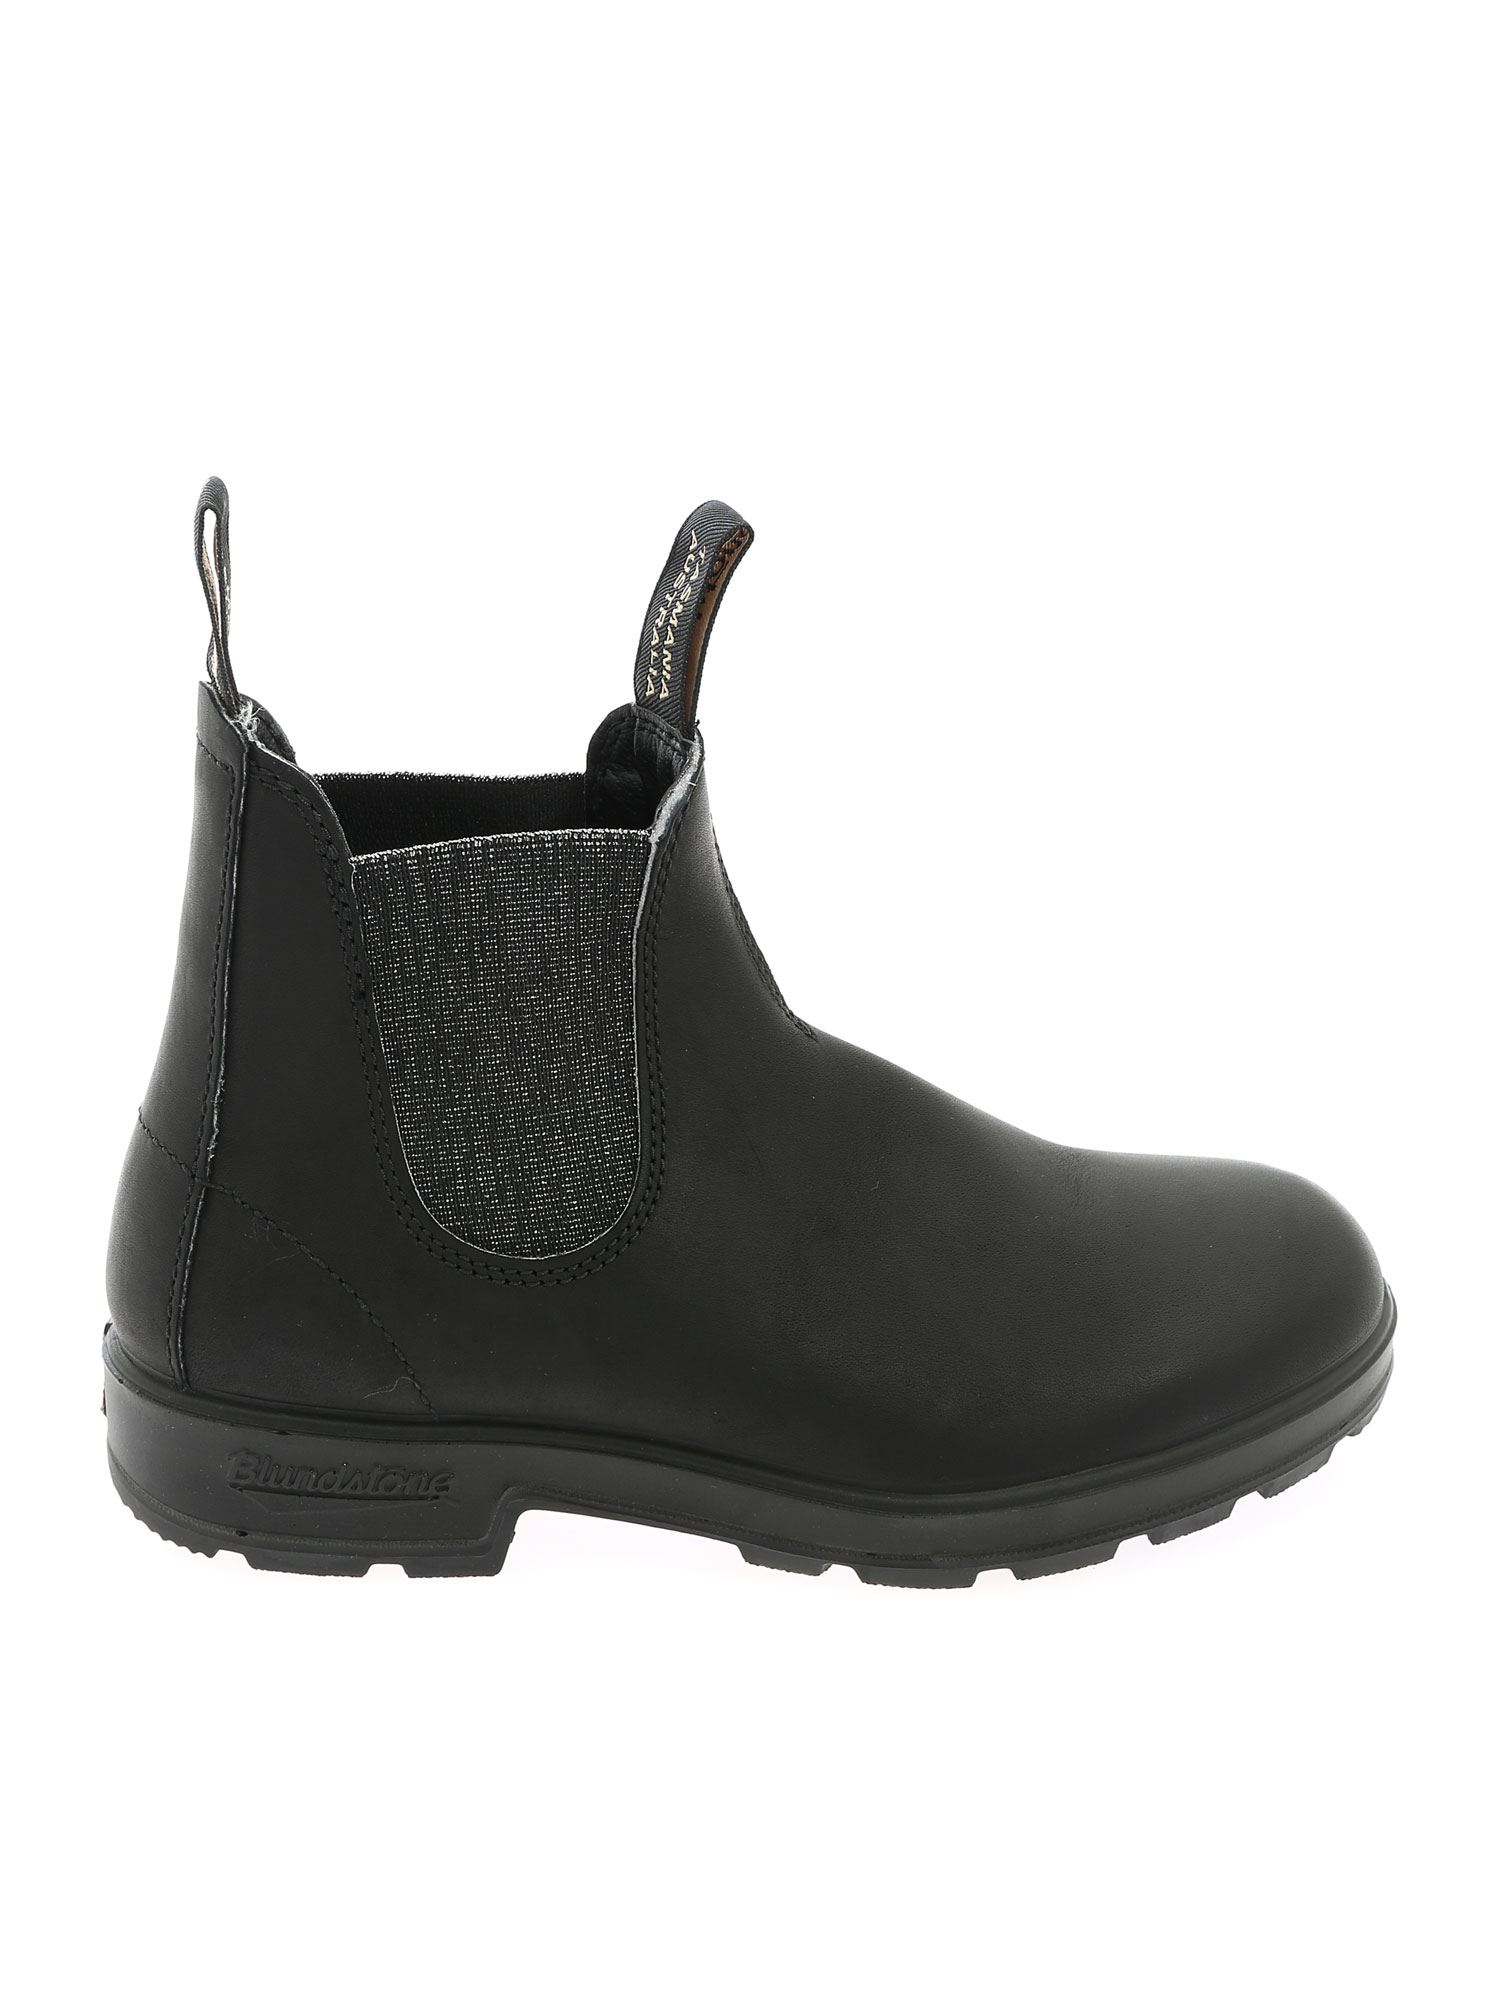 Blundstone ELASTICATED DETAIL ANKLE BOOT IN BLACK